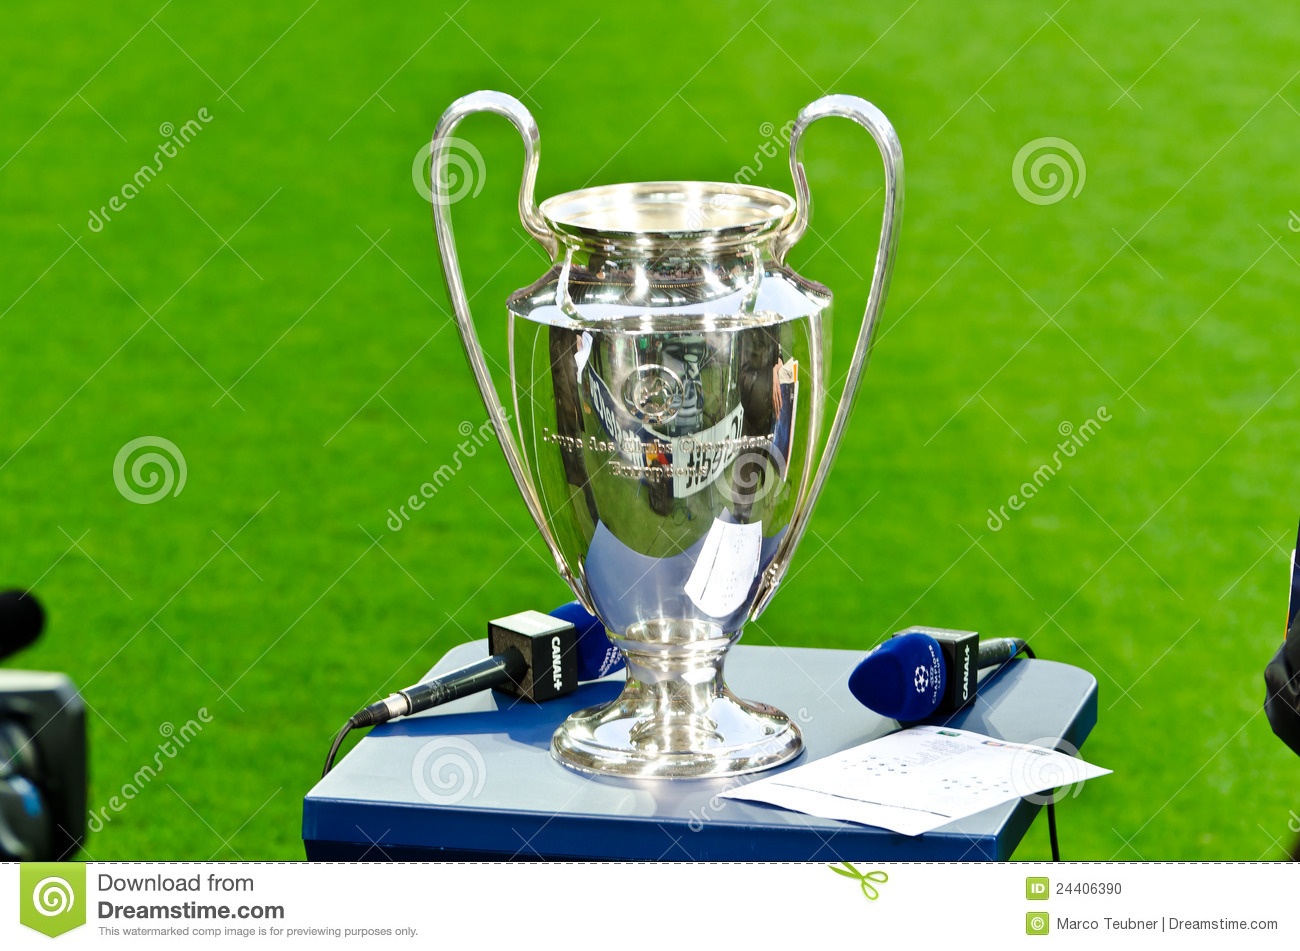 Champions Image: UEFA Champions League Cup 2012 Editorial Image